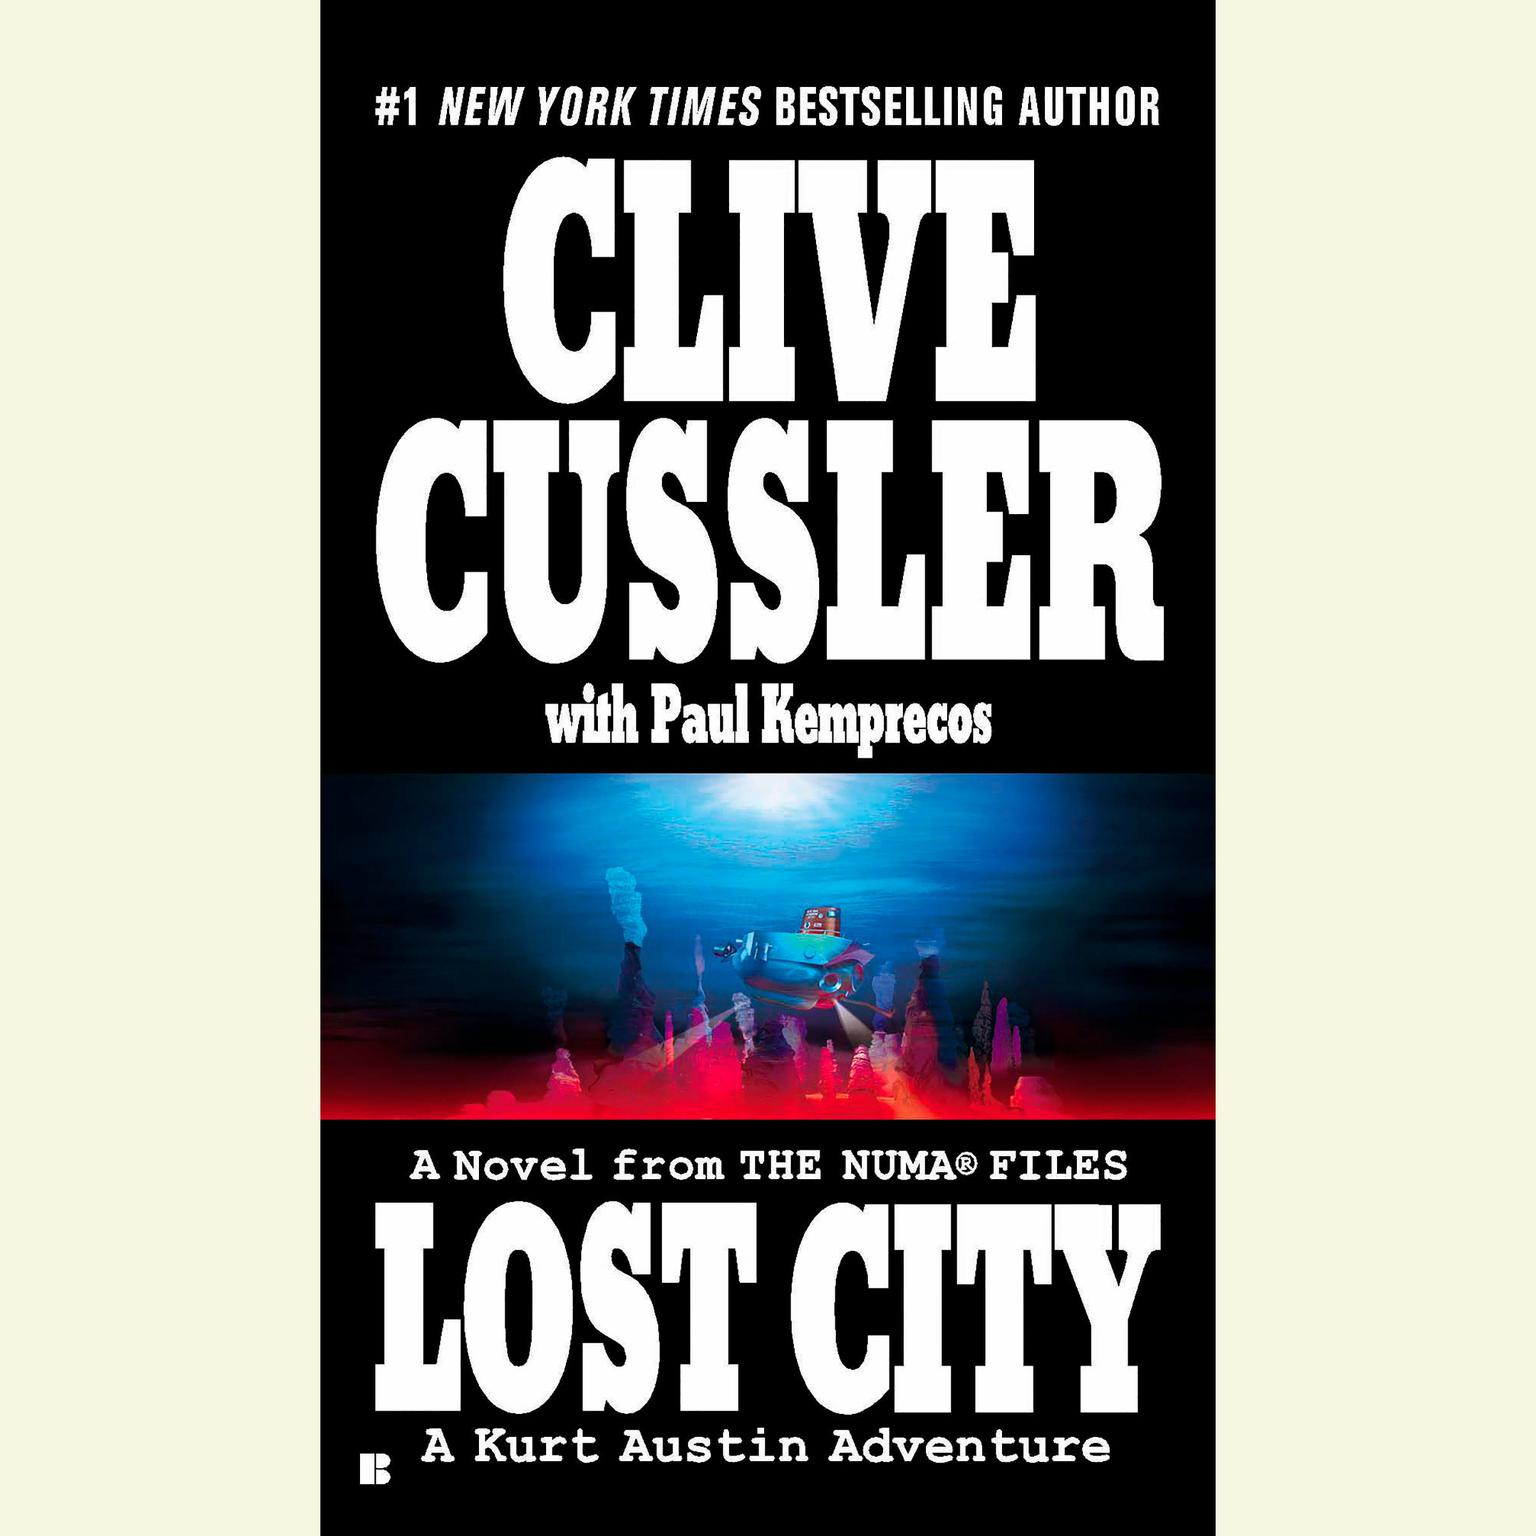 Printable Lost City Disc. Audiobook Cover Art